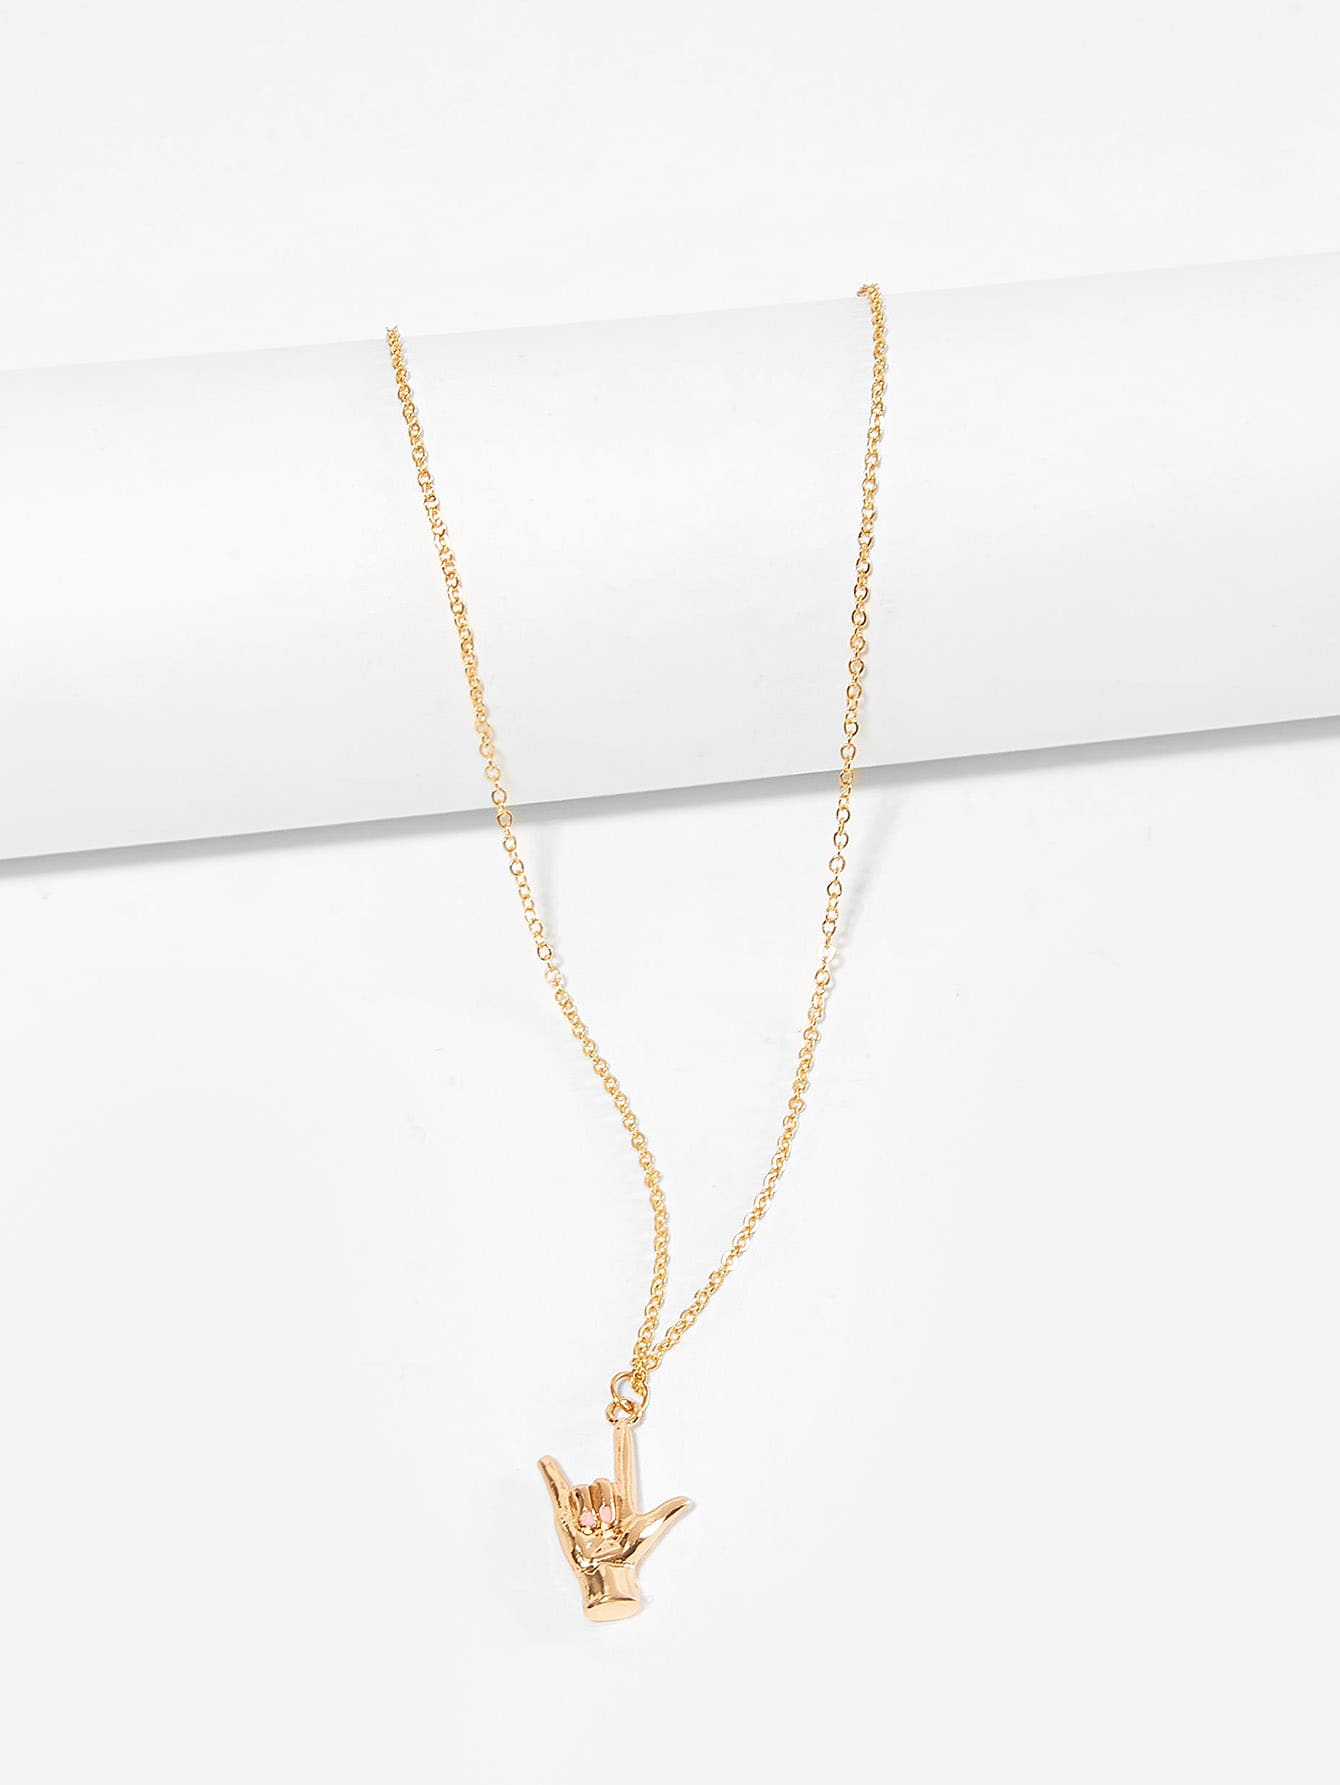 Metal Hand Pendant Chain Necklace